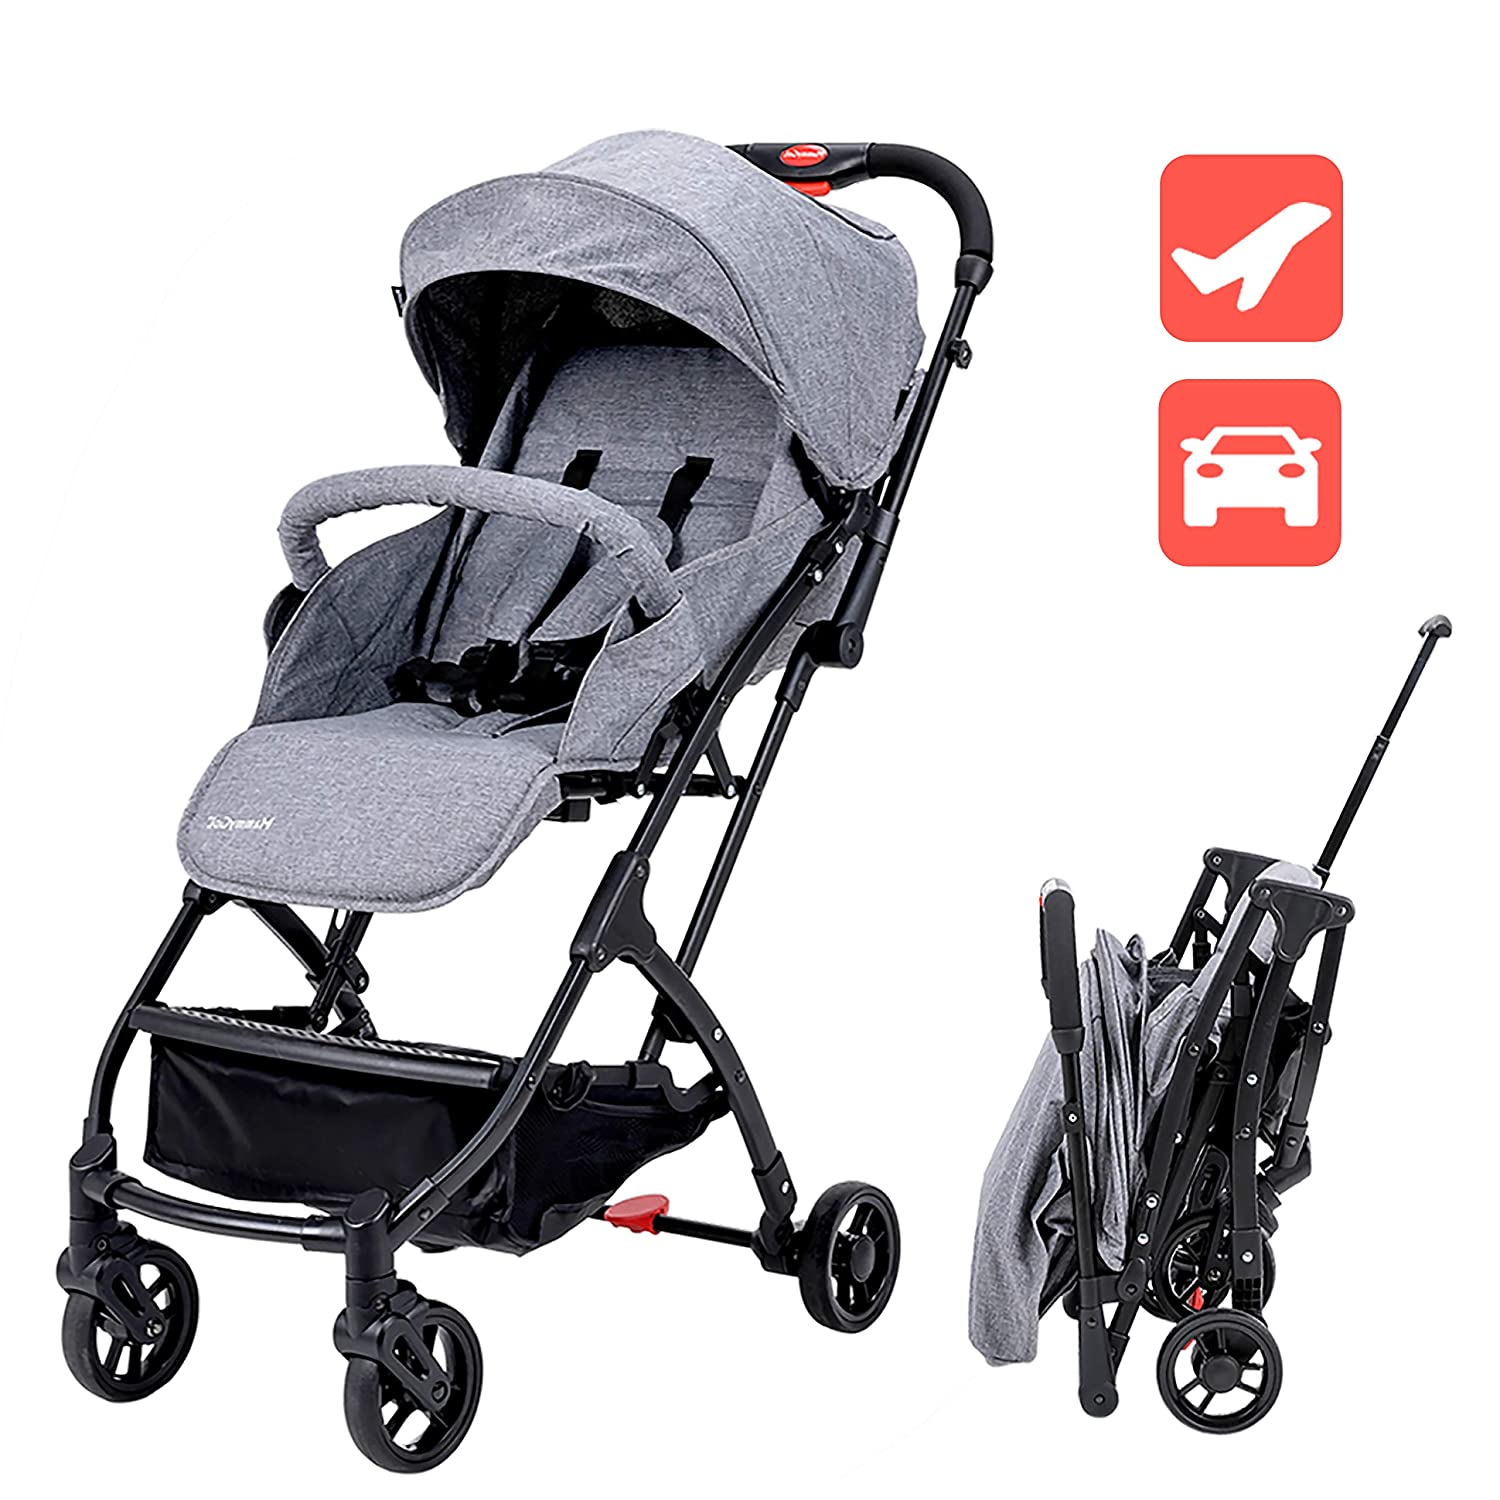 Folding Outdoor Baby Infants Travel Safety Stroller Buggy Pushchair Tool 3 Color